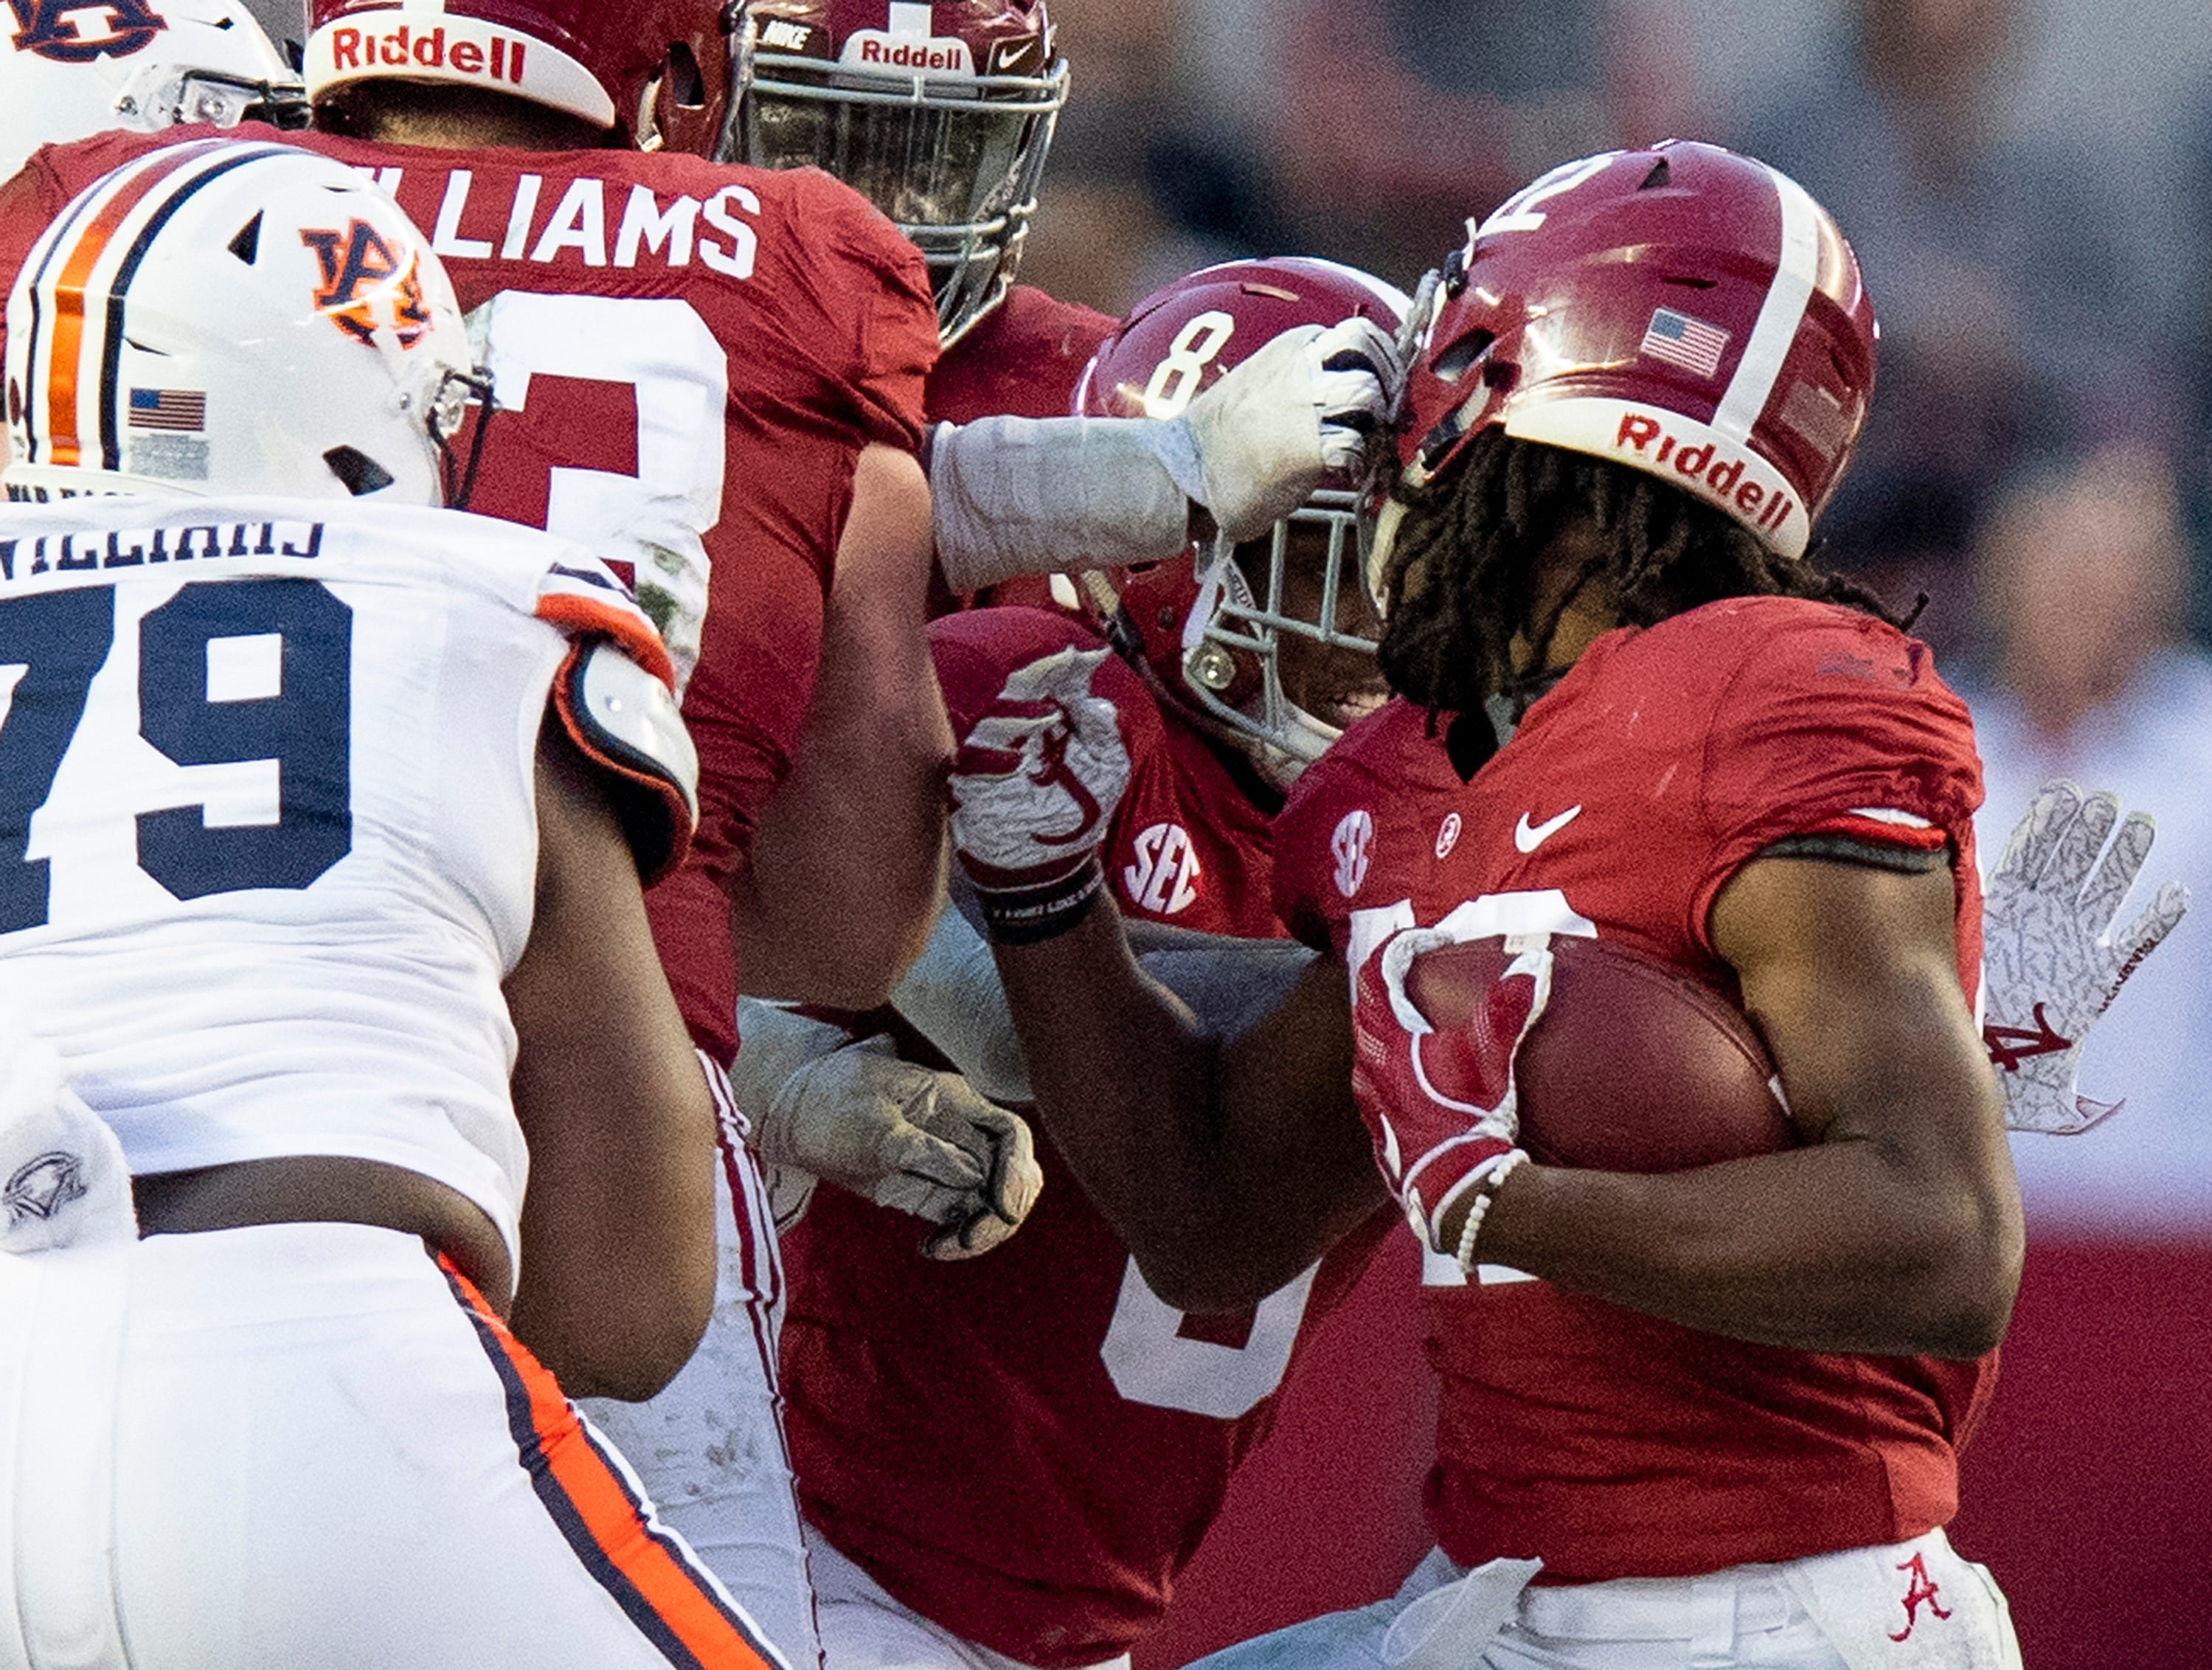 Alabama running back Najee Harris (22) is face masked as he carries the ball against Auburn in second half action during the Iron Bowl at Bryant-Denny Stadium in Tuscaloosa, Ala., on Saturday November 24, 2018.